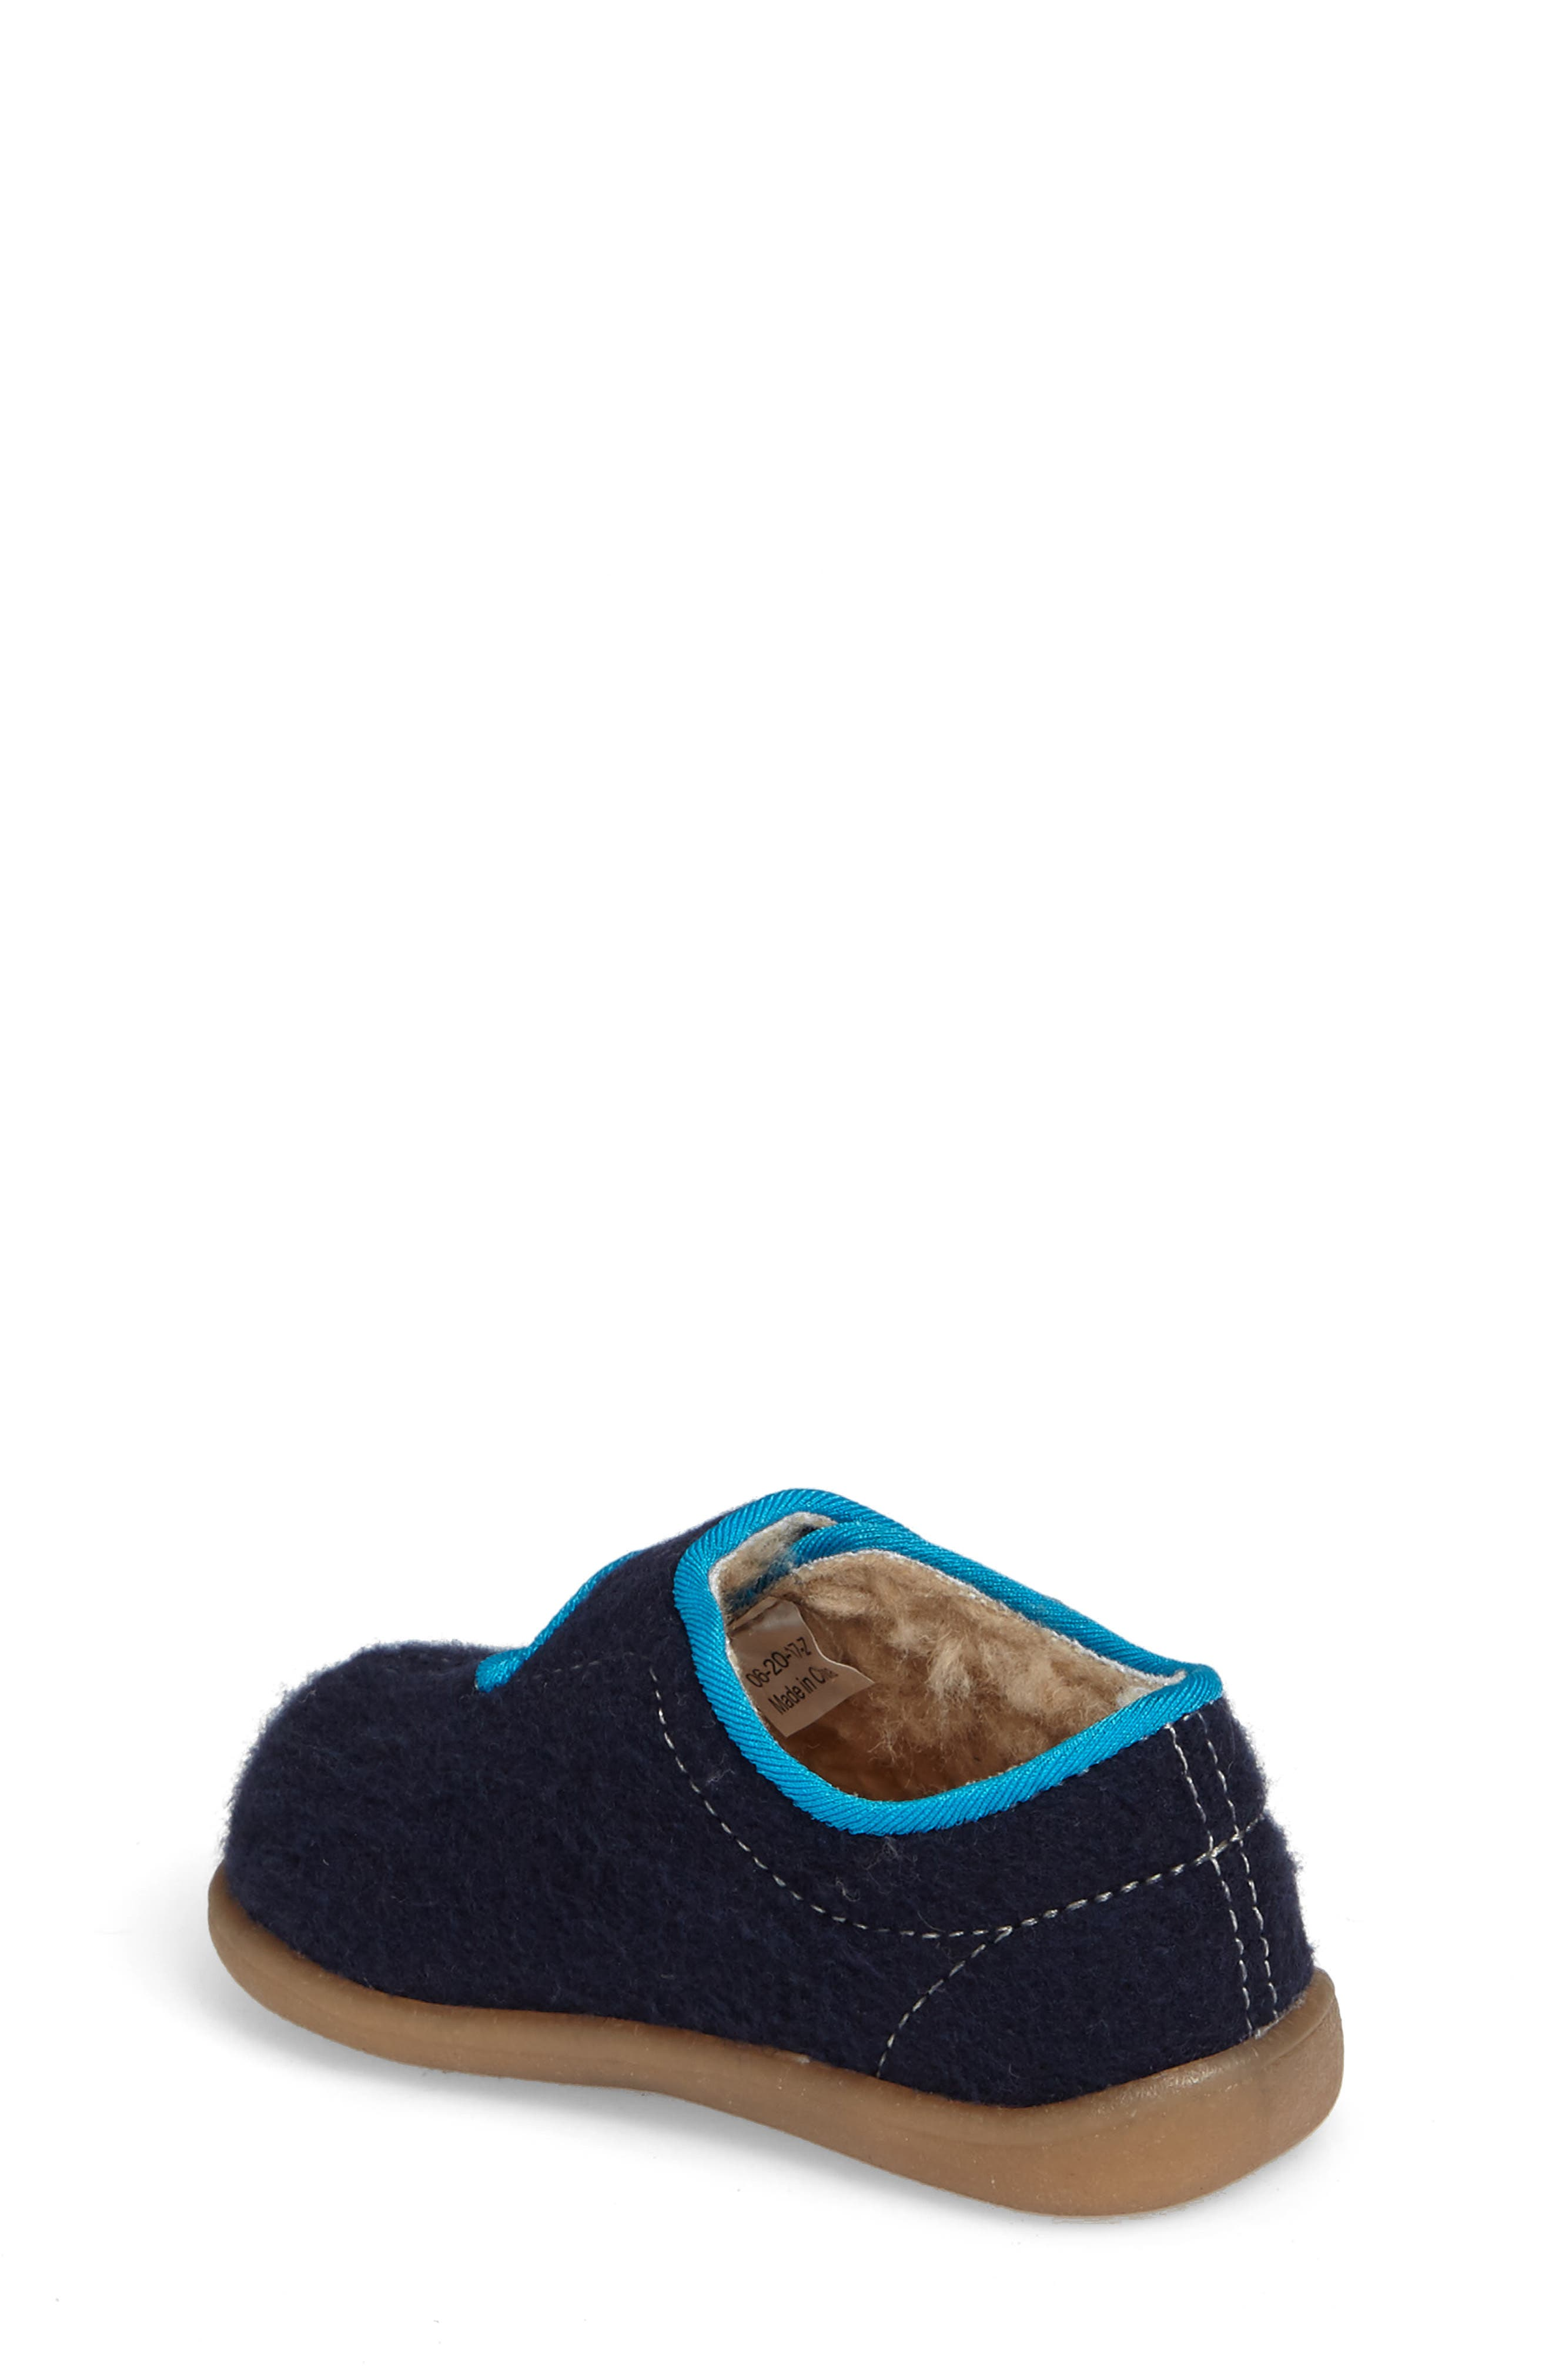 Cruz Slipper,                             Alternate thumbnail 2, color,                             Navy